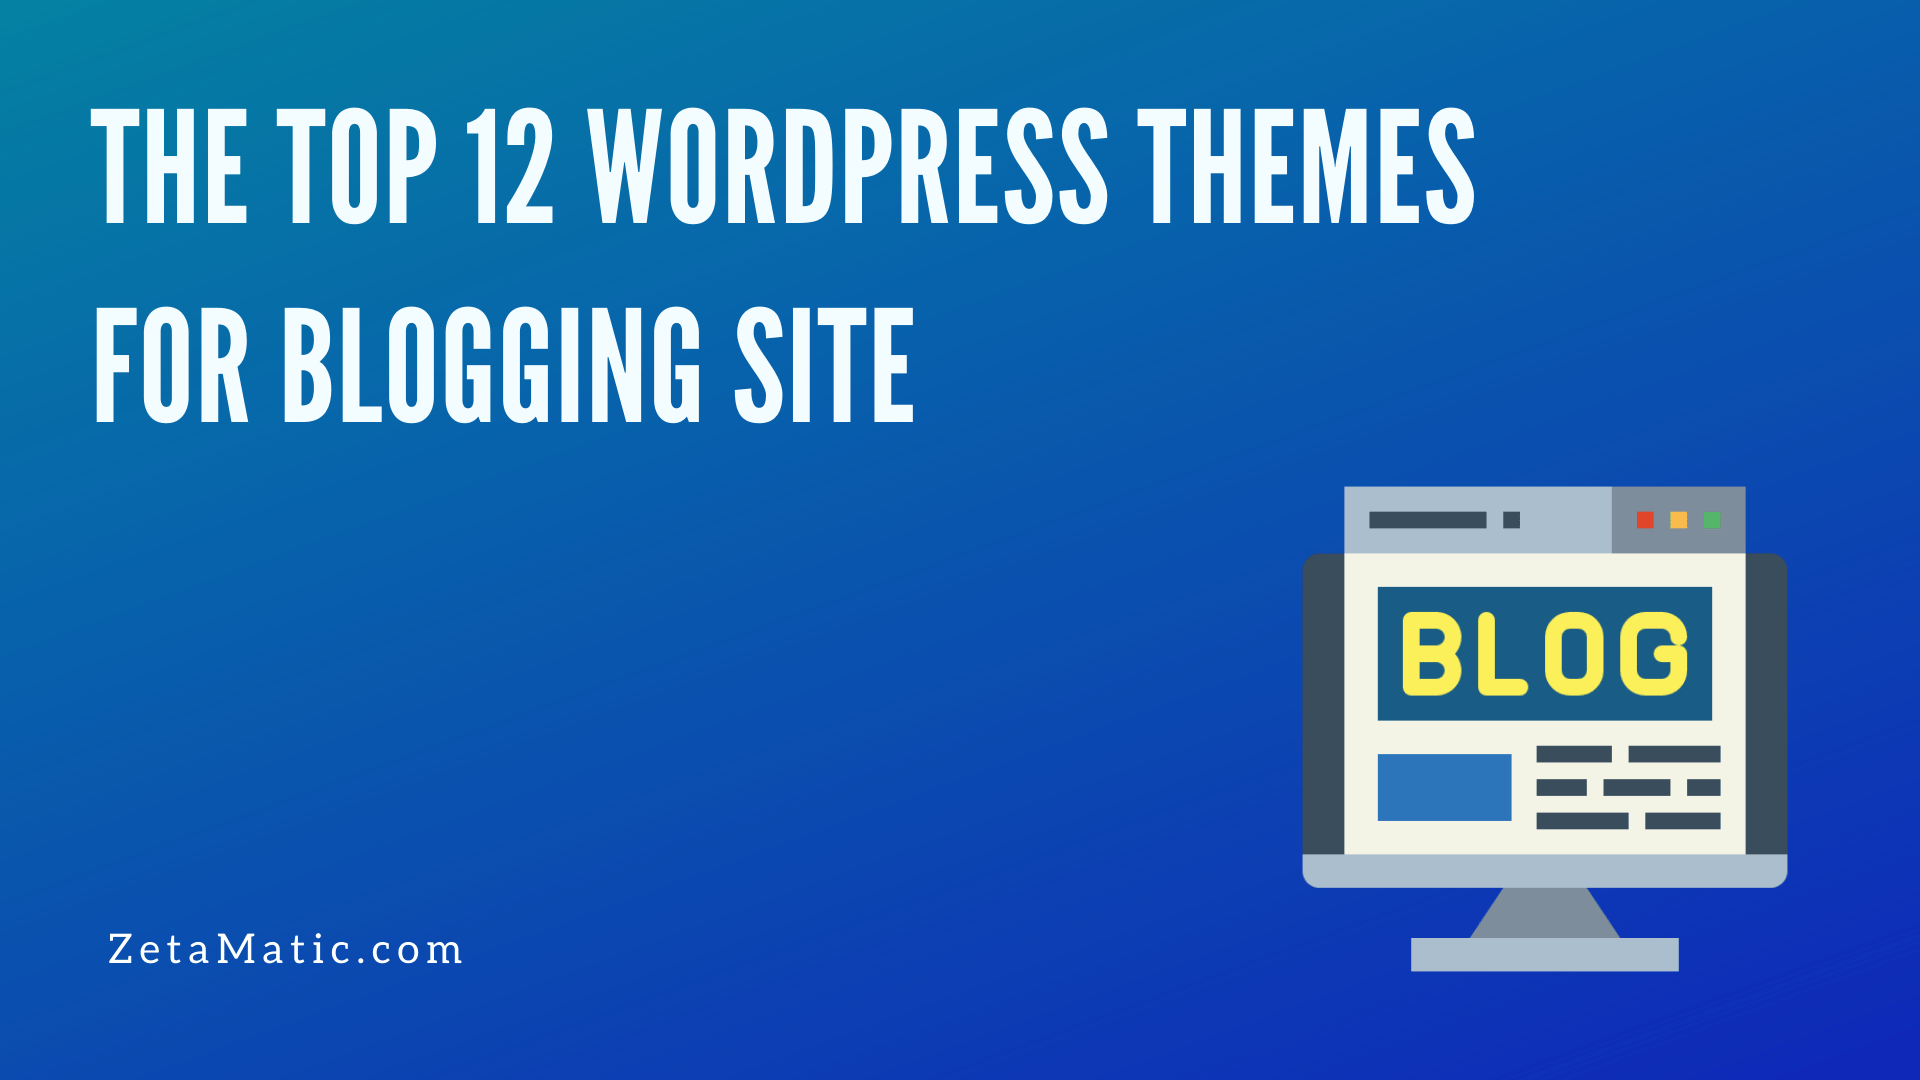 The Top 12 Wordpress Themes for Blogging Site